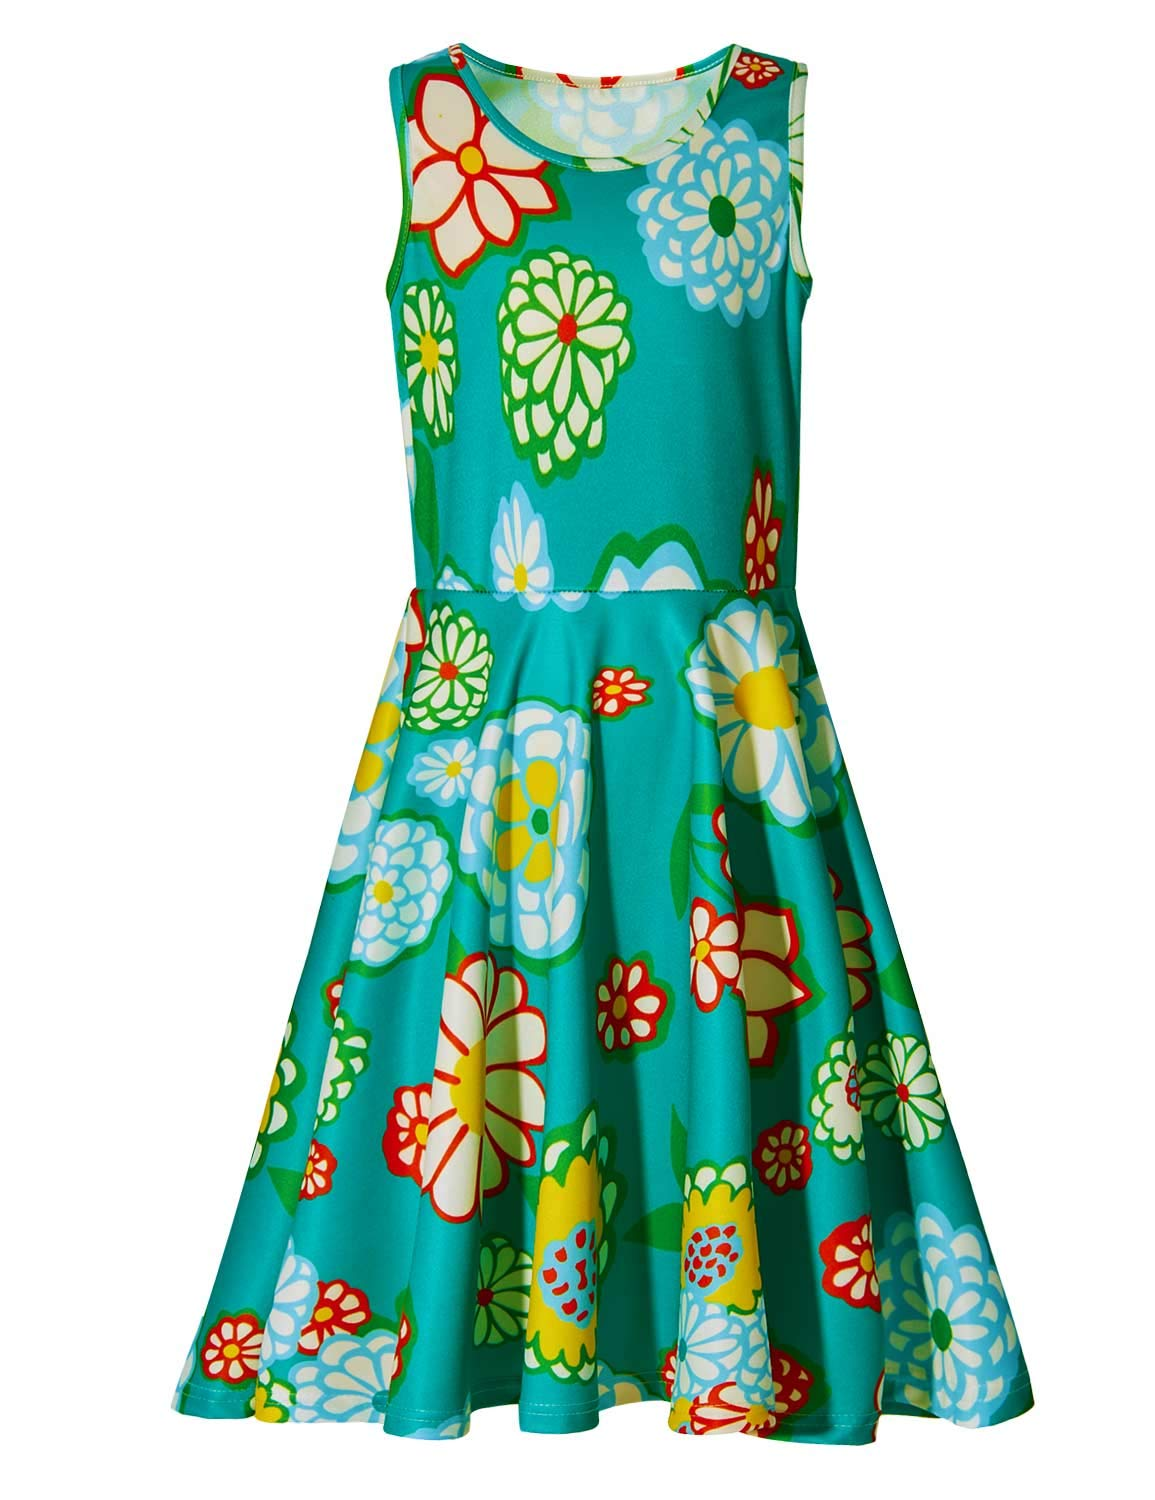 Ahegao 8 Years Old Kid's Holiday Party Short Sleeve Skirts Cute Print Cartoon Flower Graphics Primary School Students Green Casual Dress